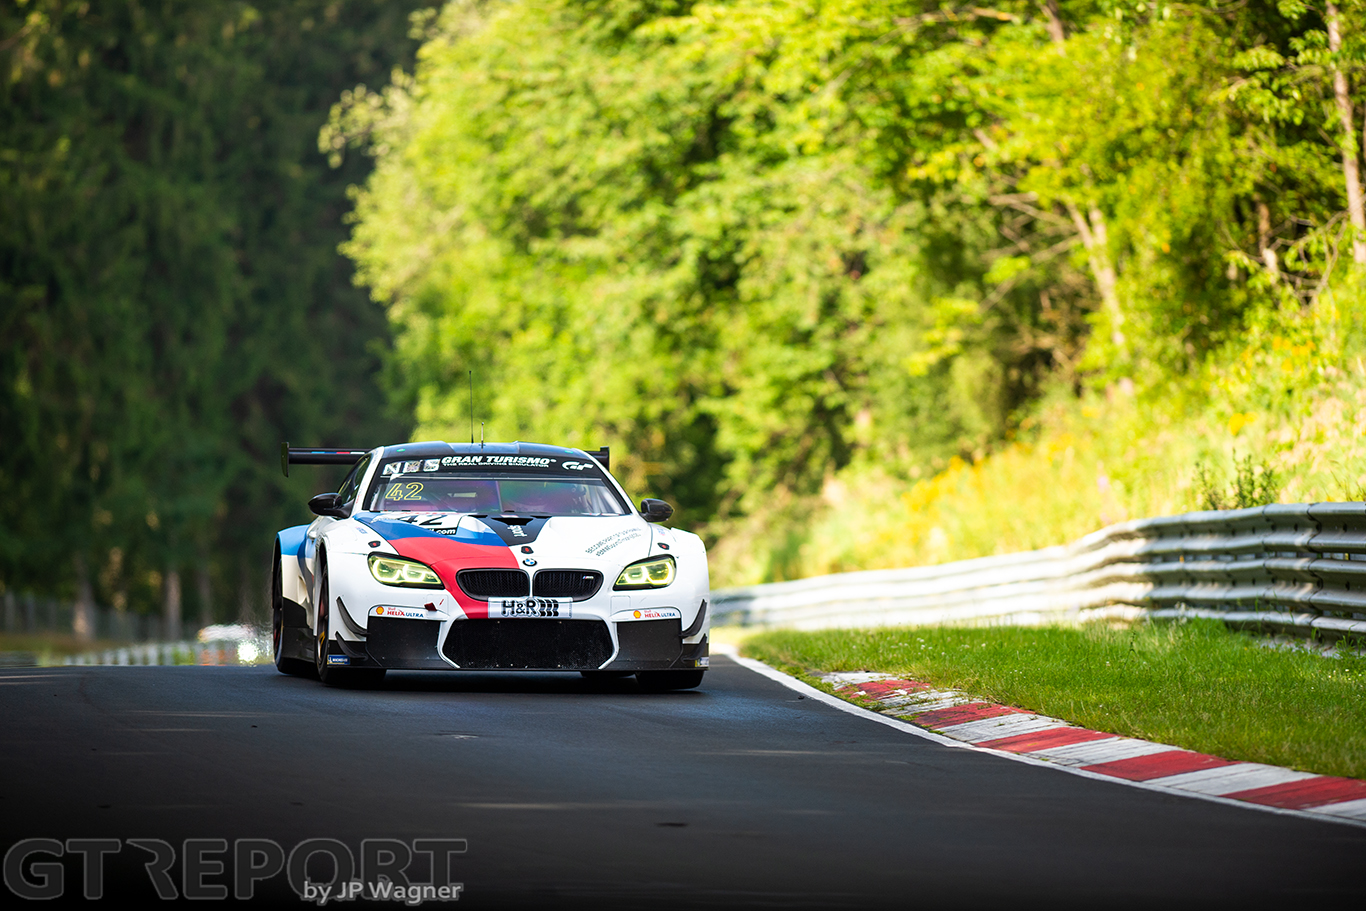 VLN2 qualifying report: Augusto Farfus flies to pole position